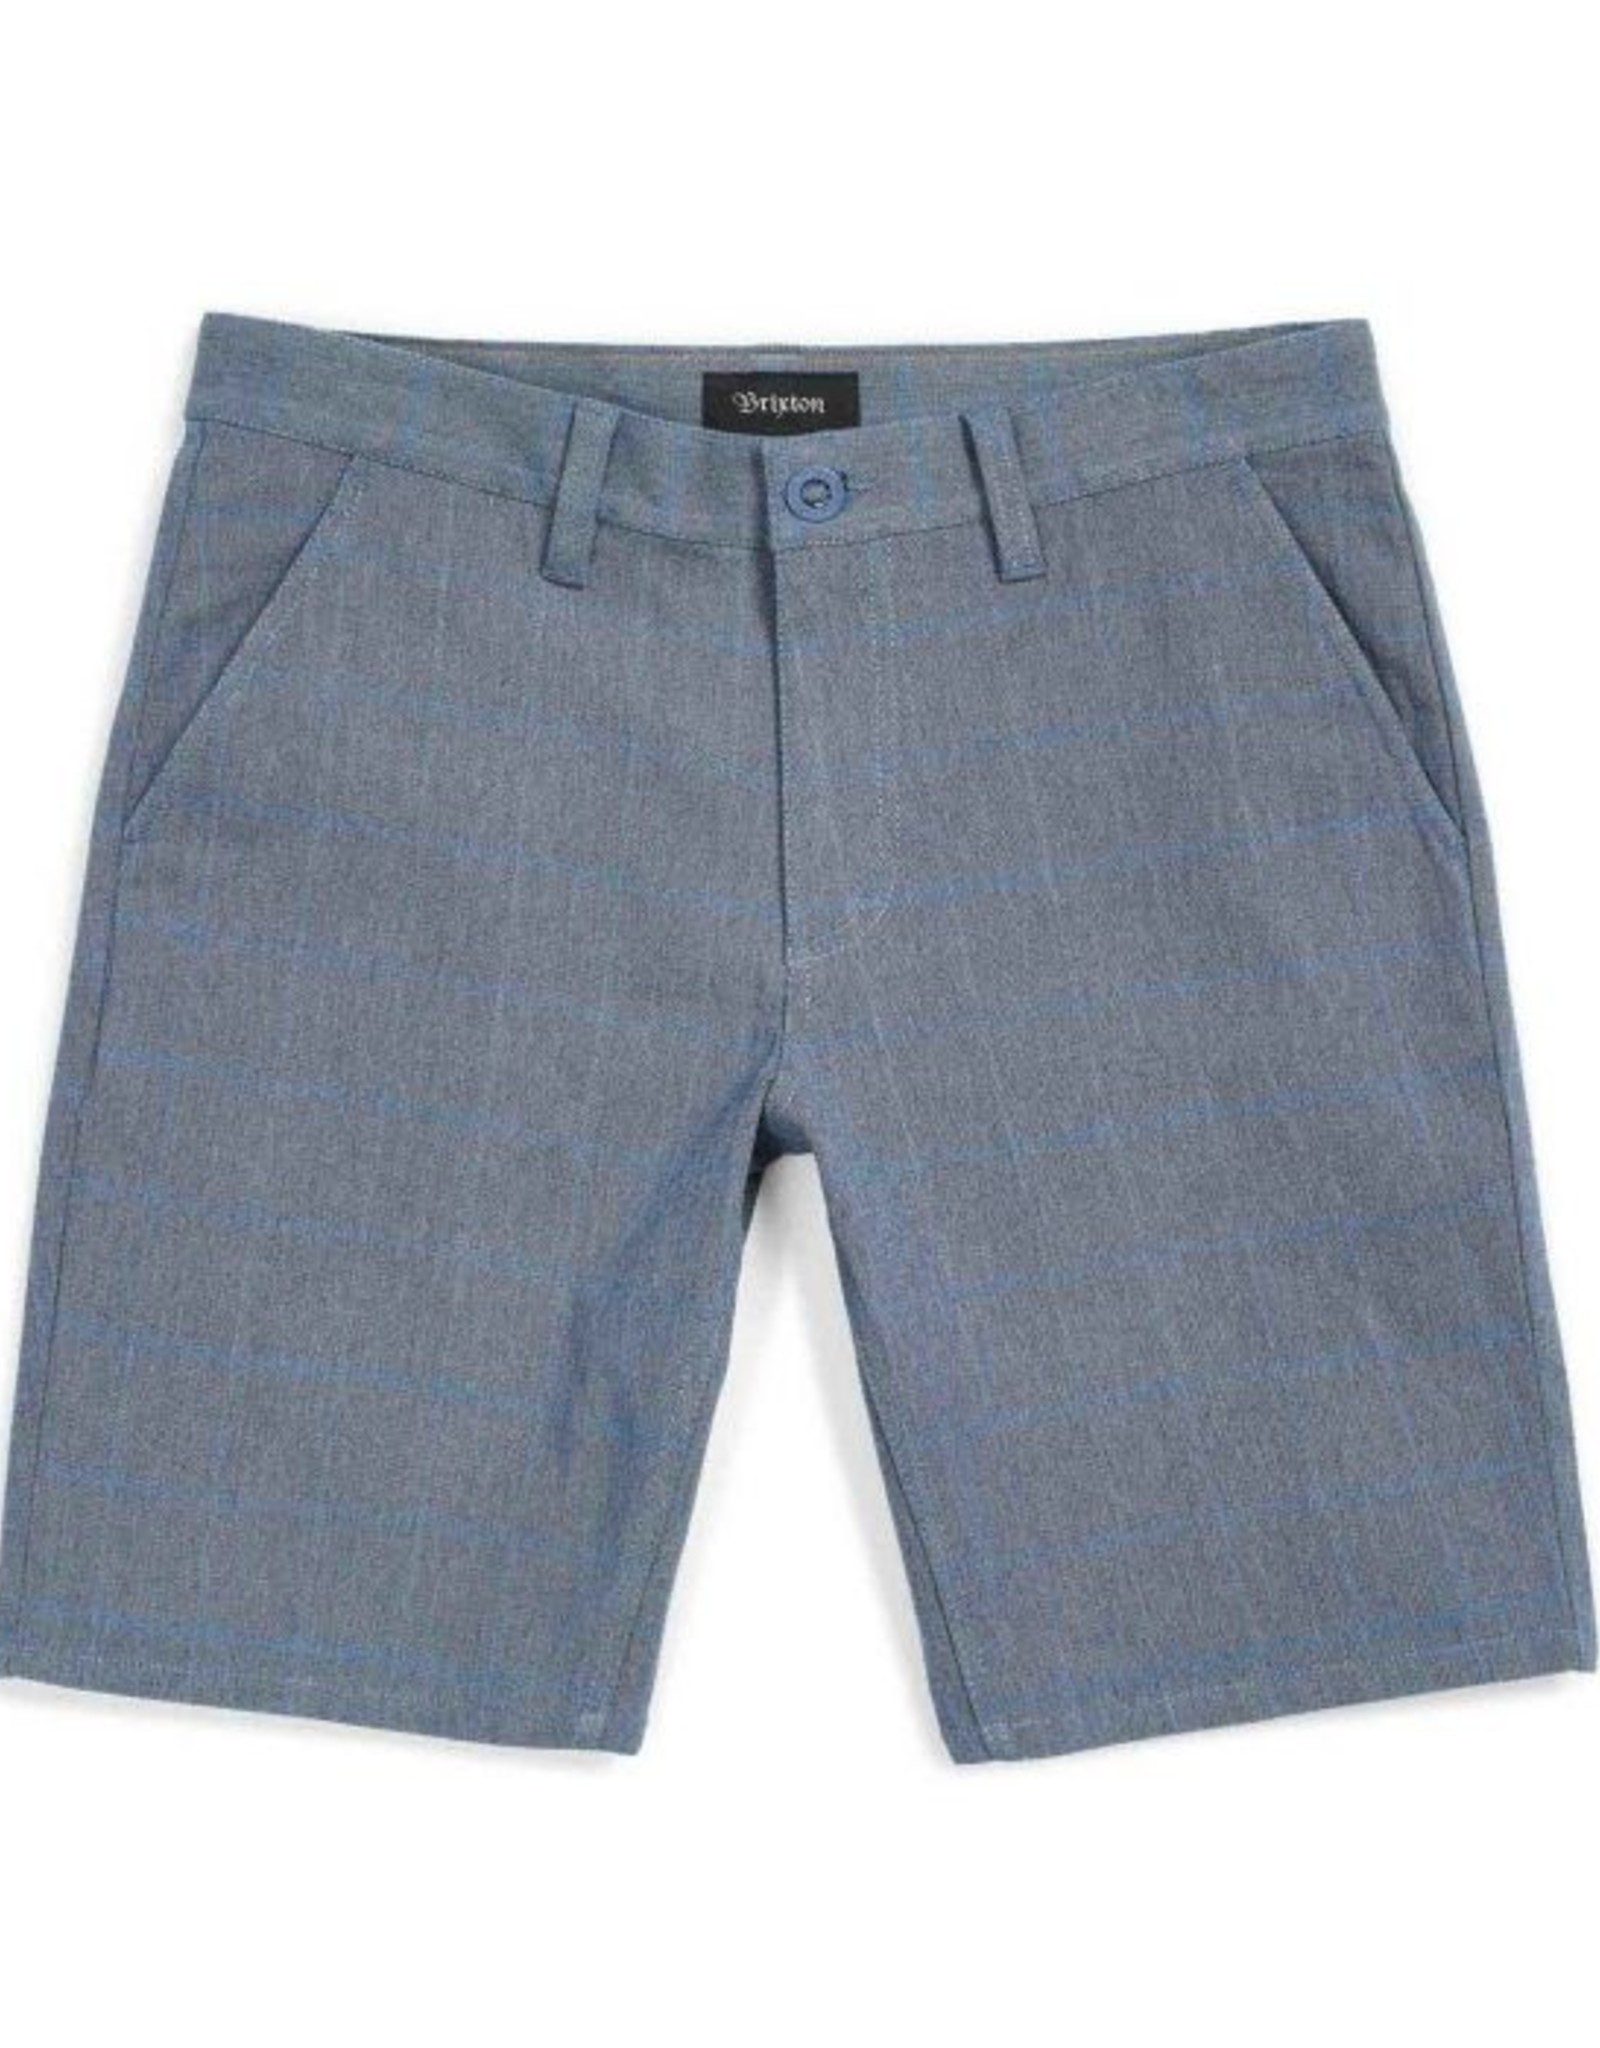 BRIXTON BRIXTON TOIL 2 HEMMED SHORT - LIGHT BLUE PLAID